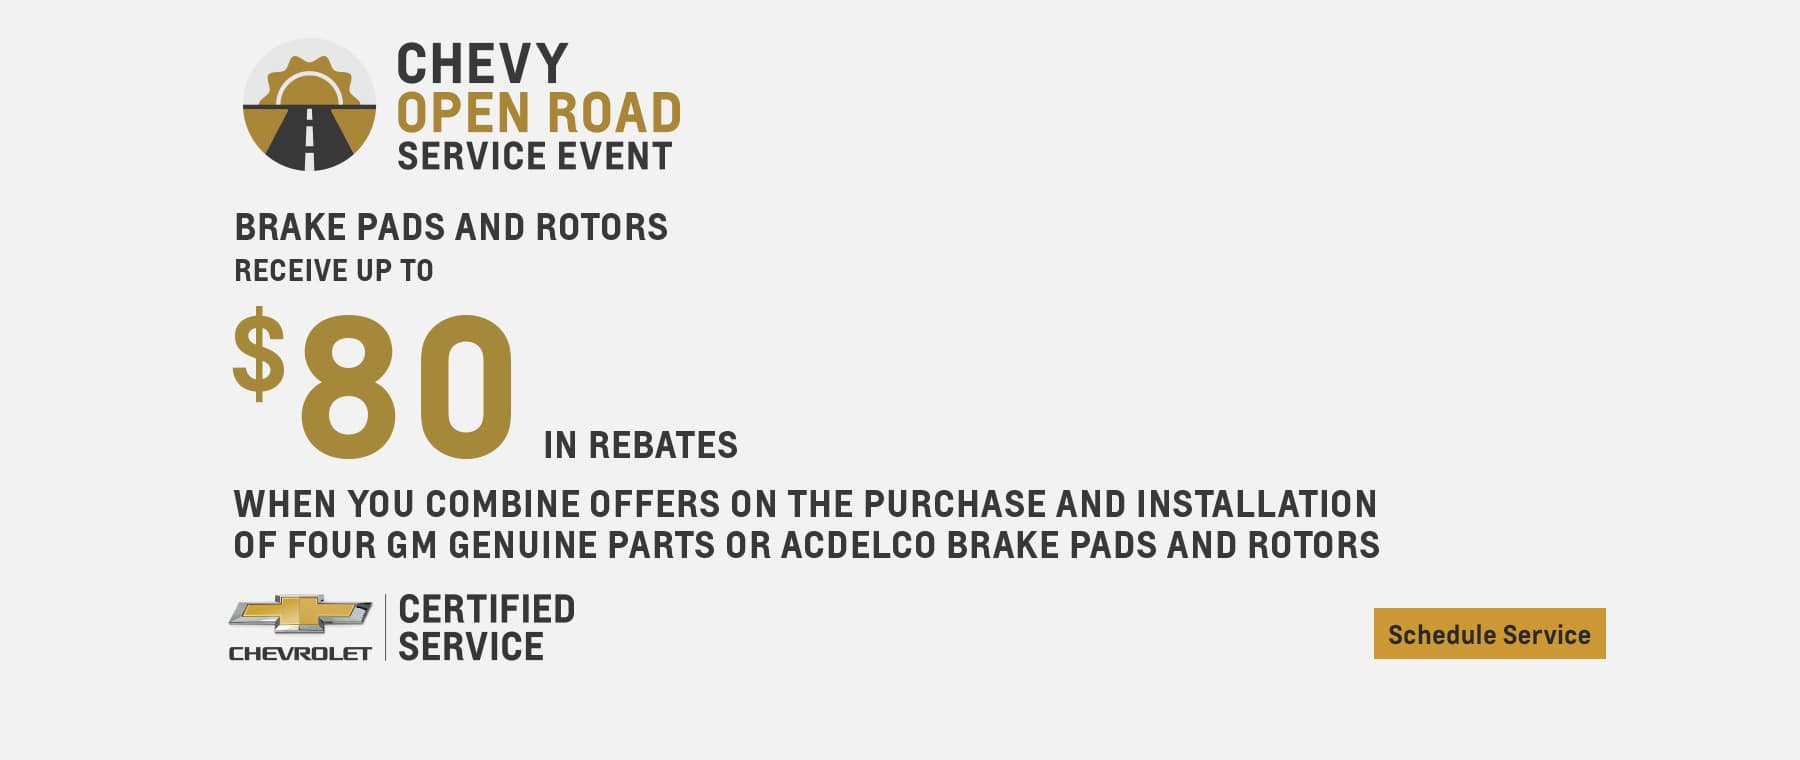 01_2021_July_ChevyCertifiedService_OpenRoadServiceEvent_BrakeOffer_1800x760